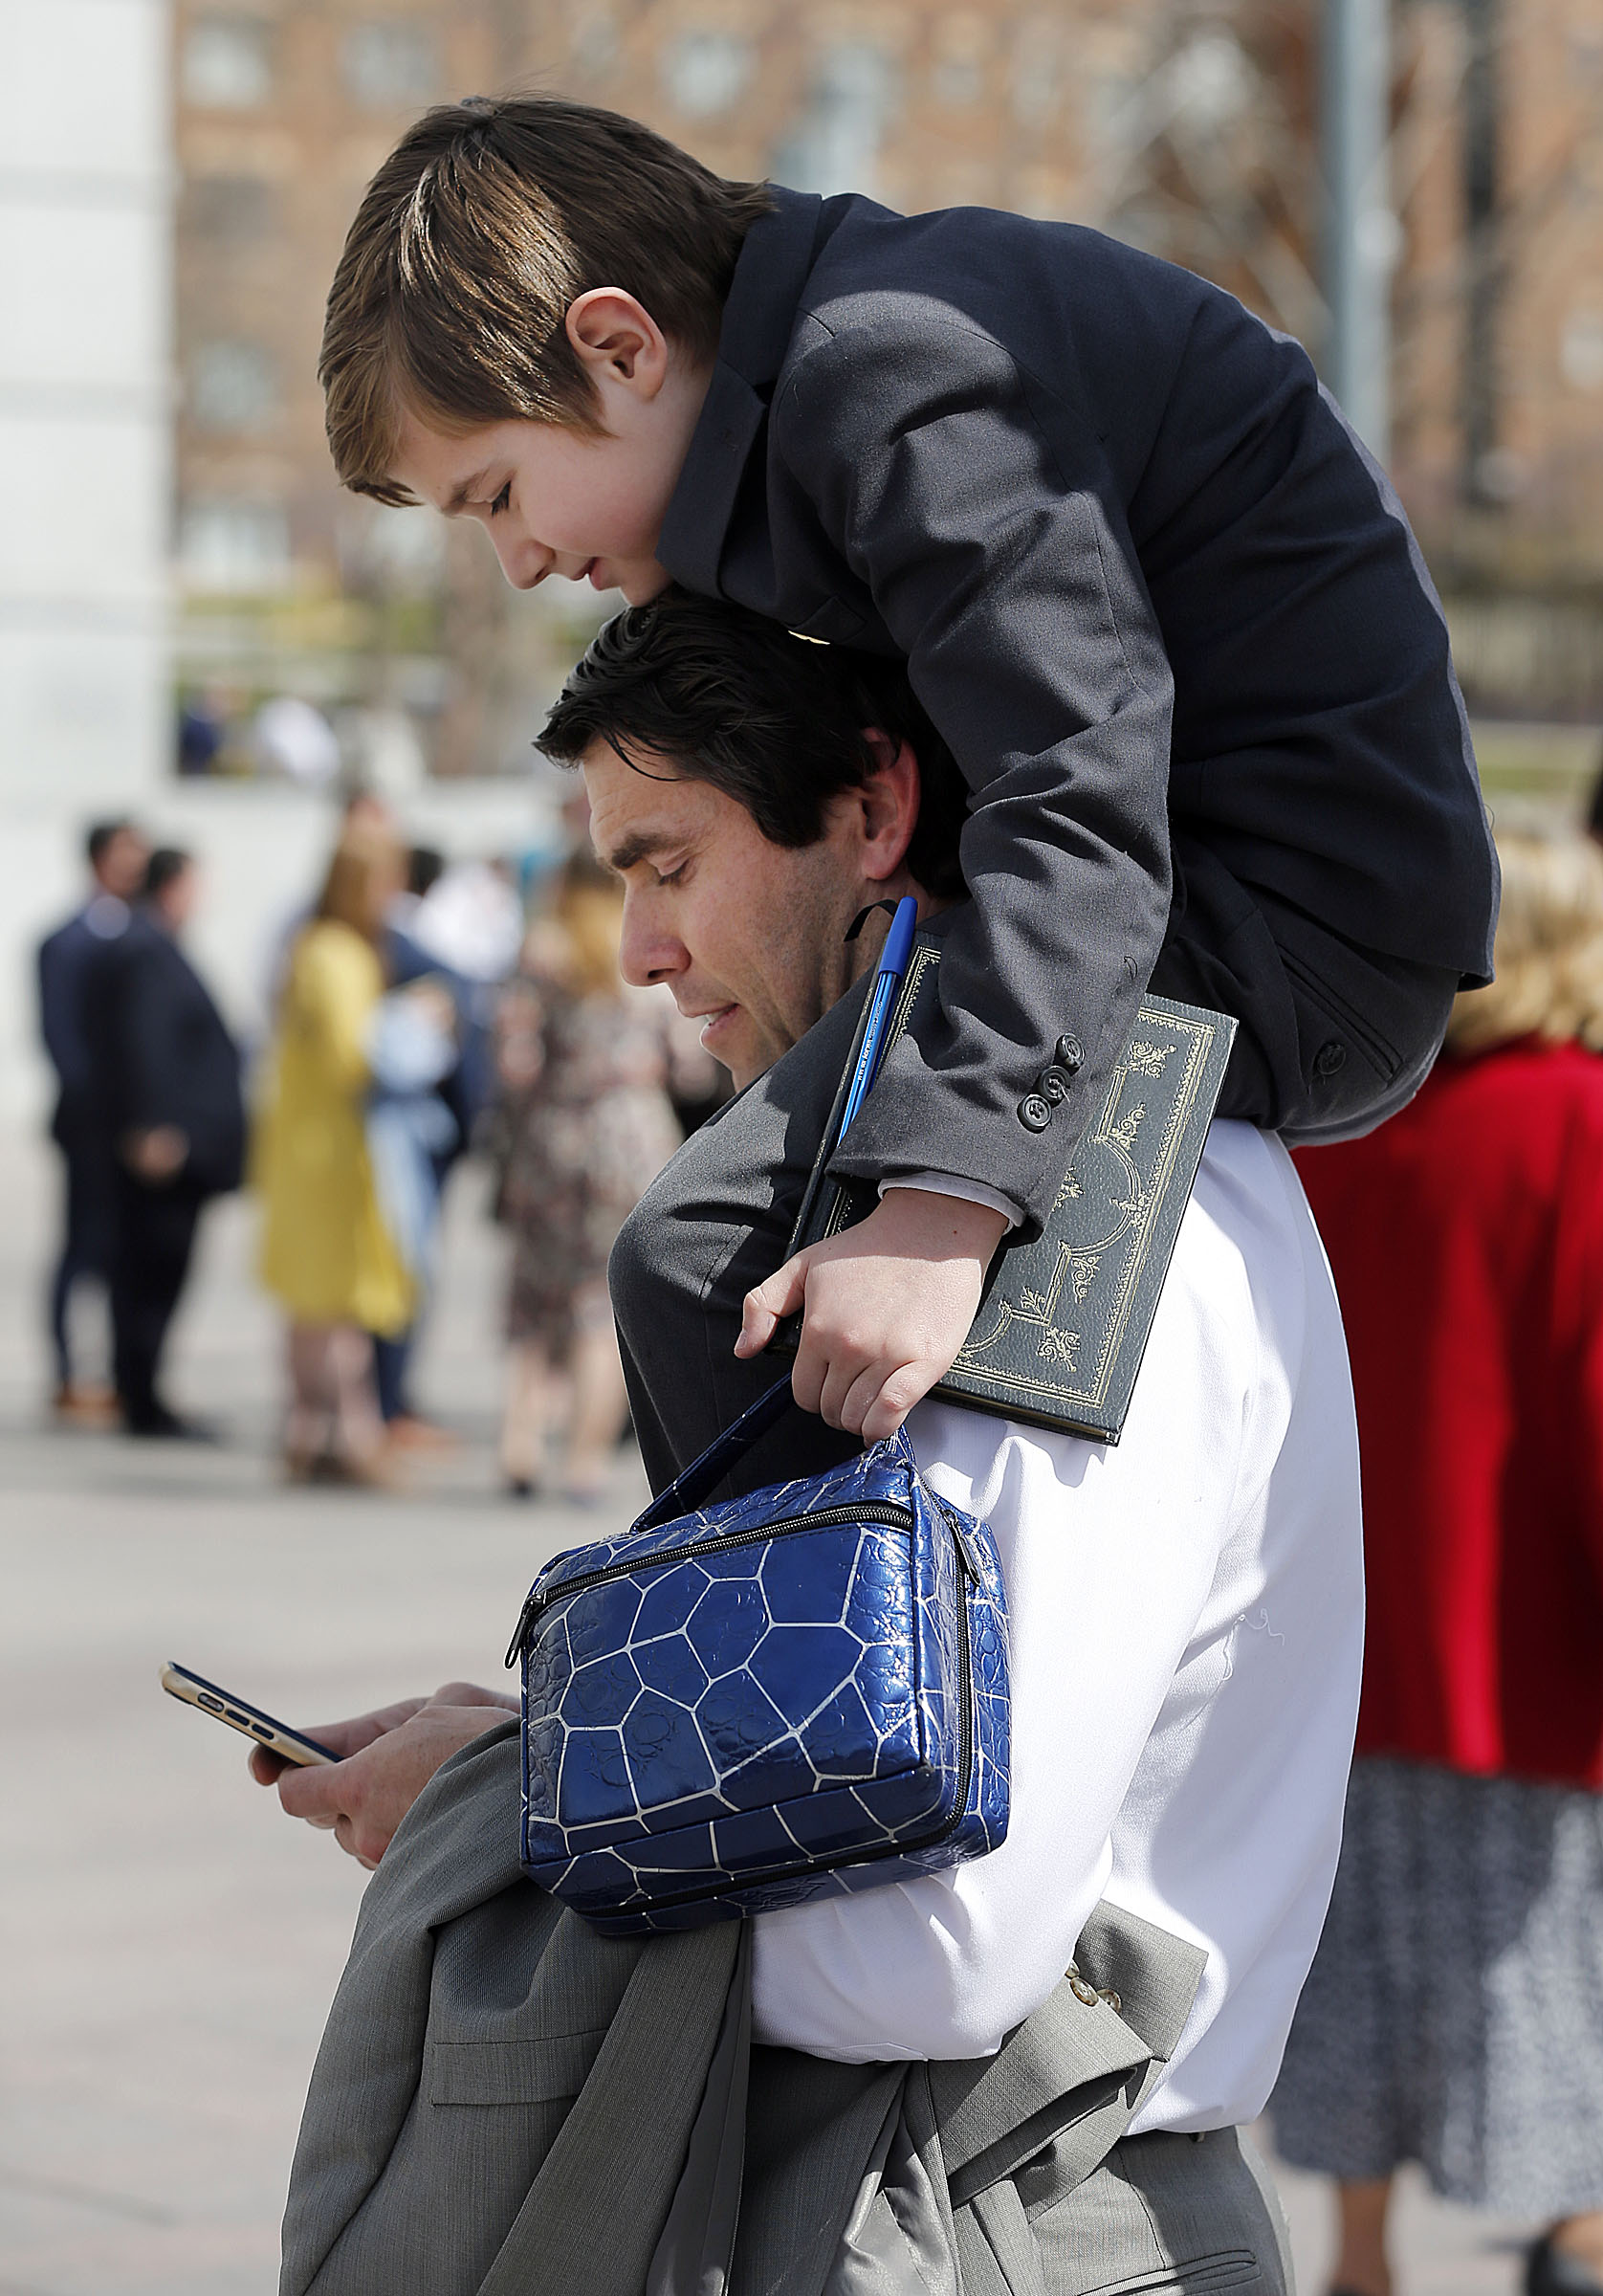 Joey O'Loughlin and his son Joseph Michael O'Loughlin wait outside the Conference Center following the Saturday morning session of the LDS Church's 188th Annual General Conference in Salt Lake City on Saturday, March 31, 2018.